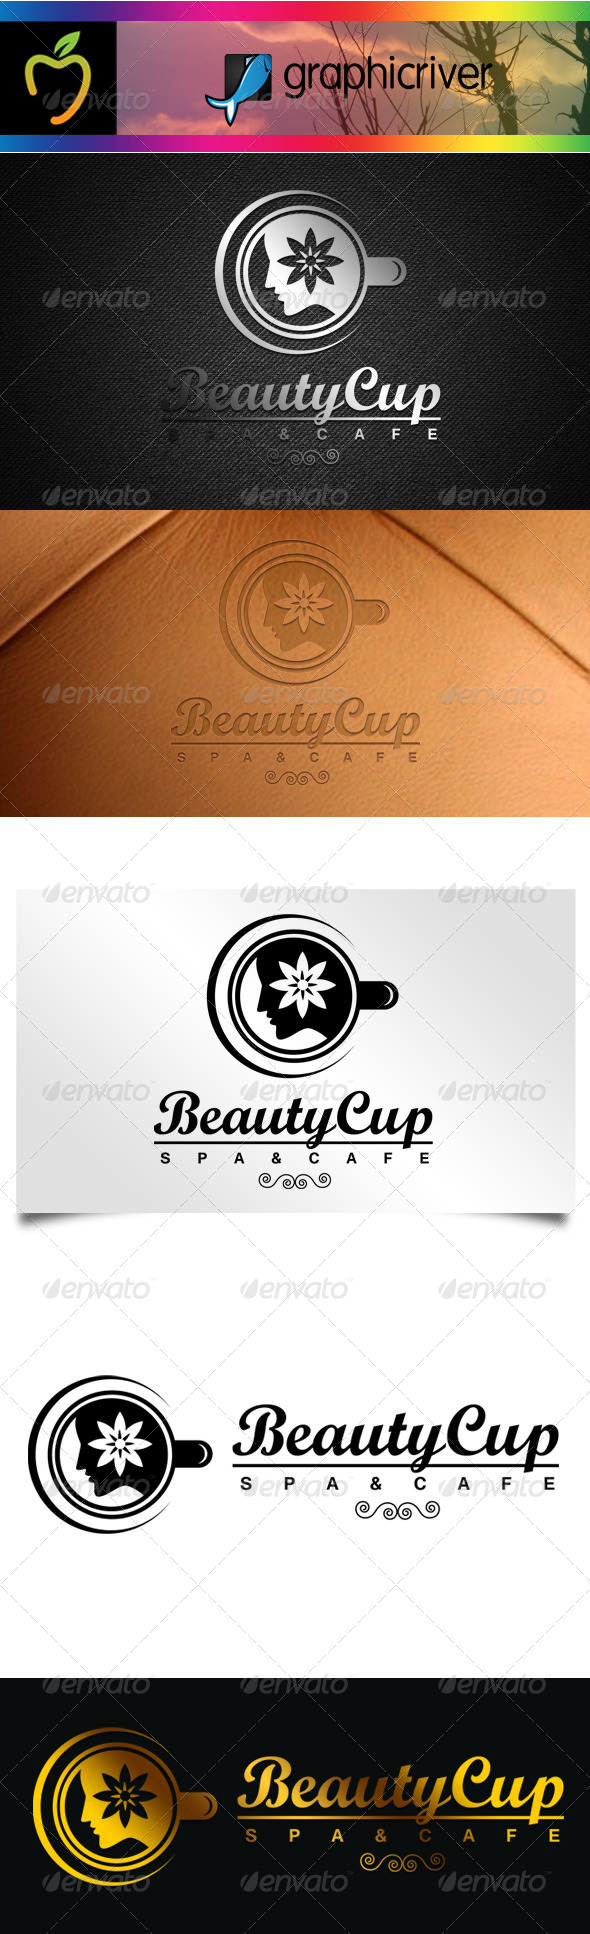 GraphicRiver Beauty Cup Logo 7586868